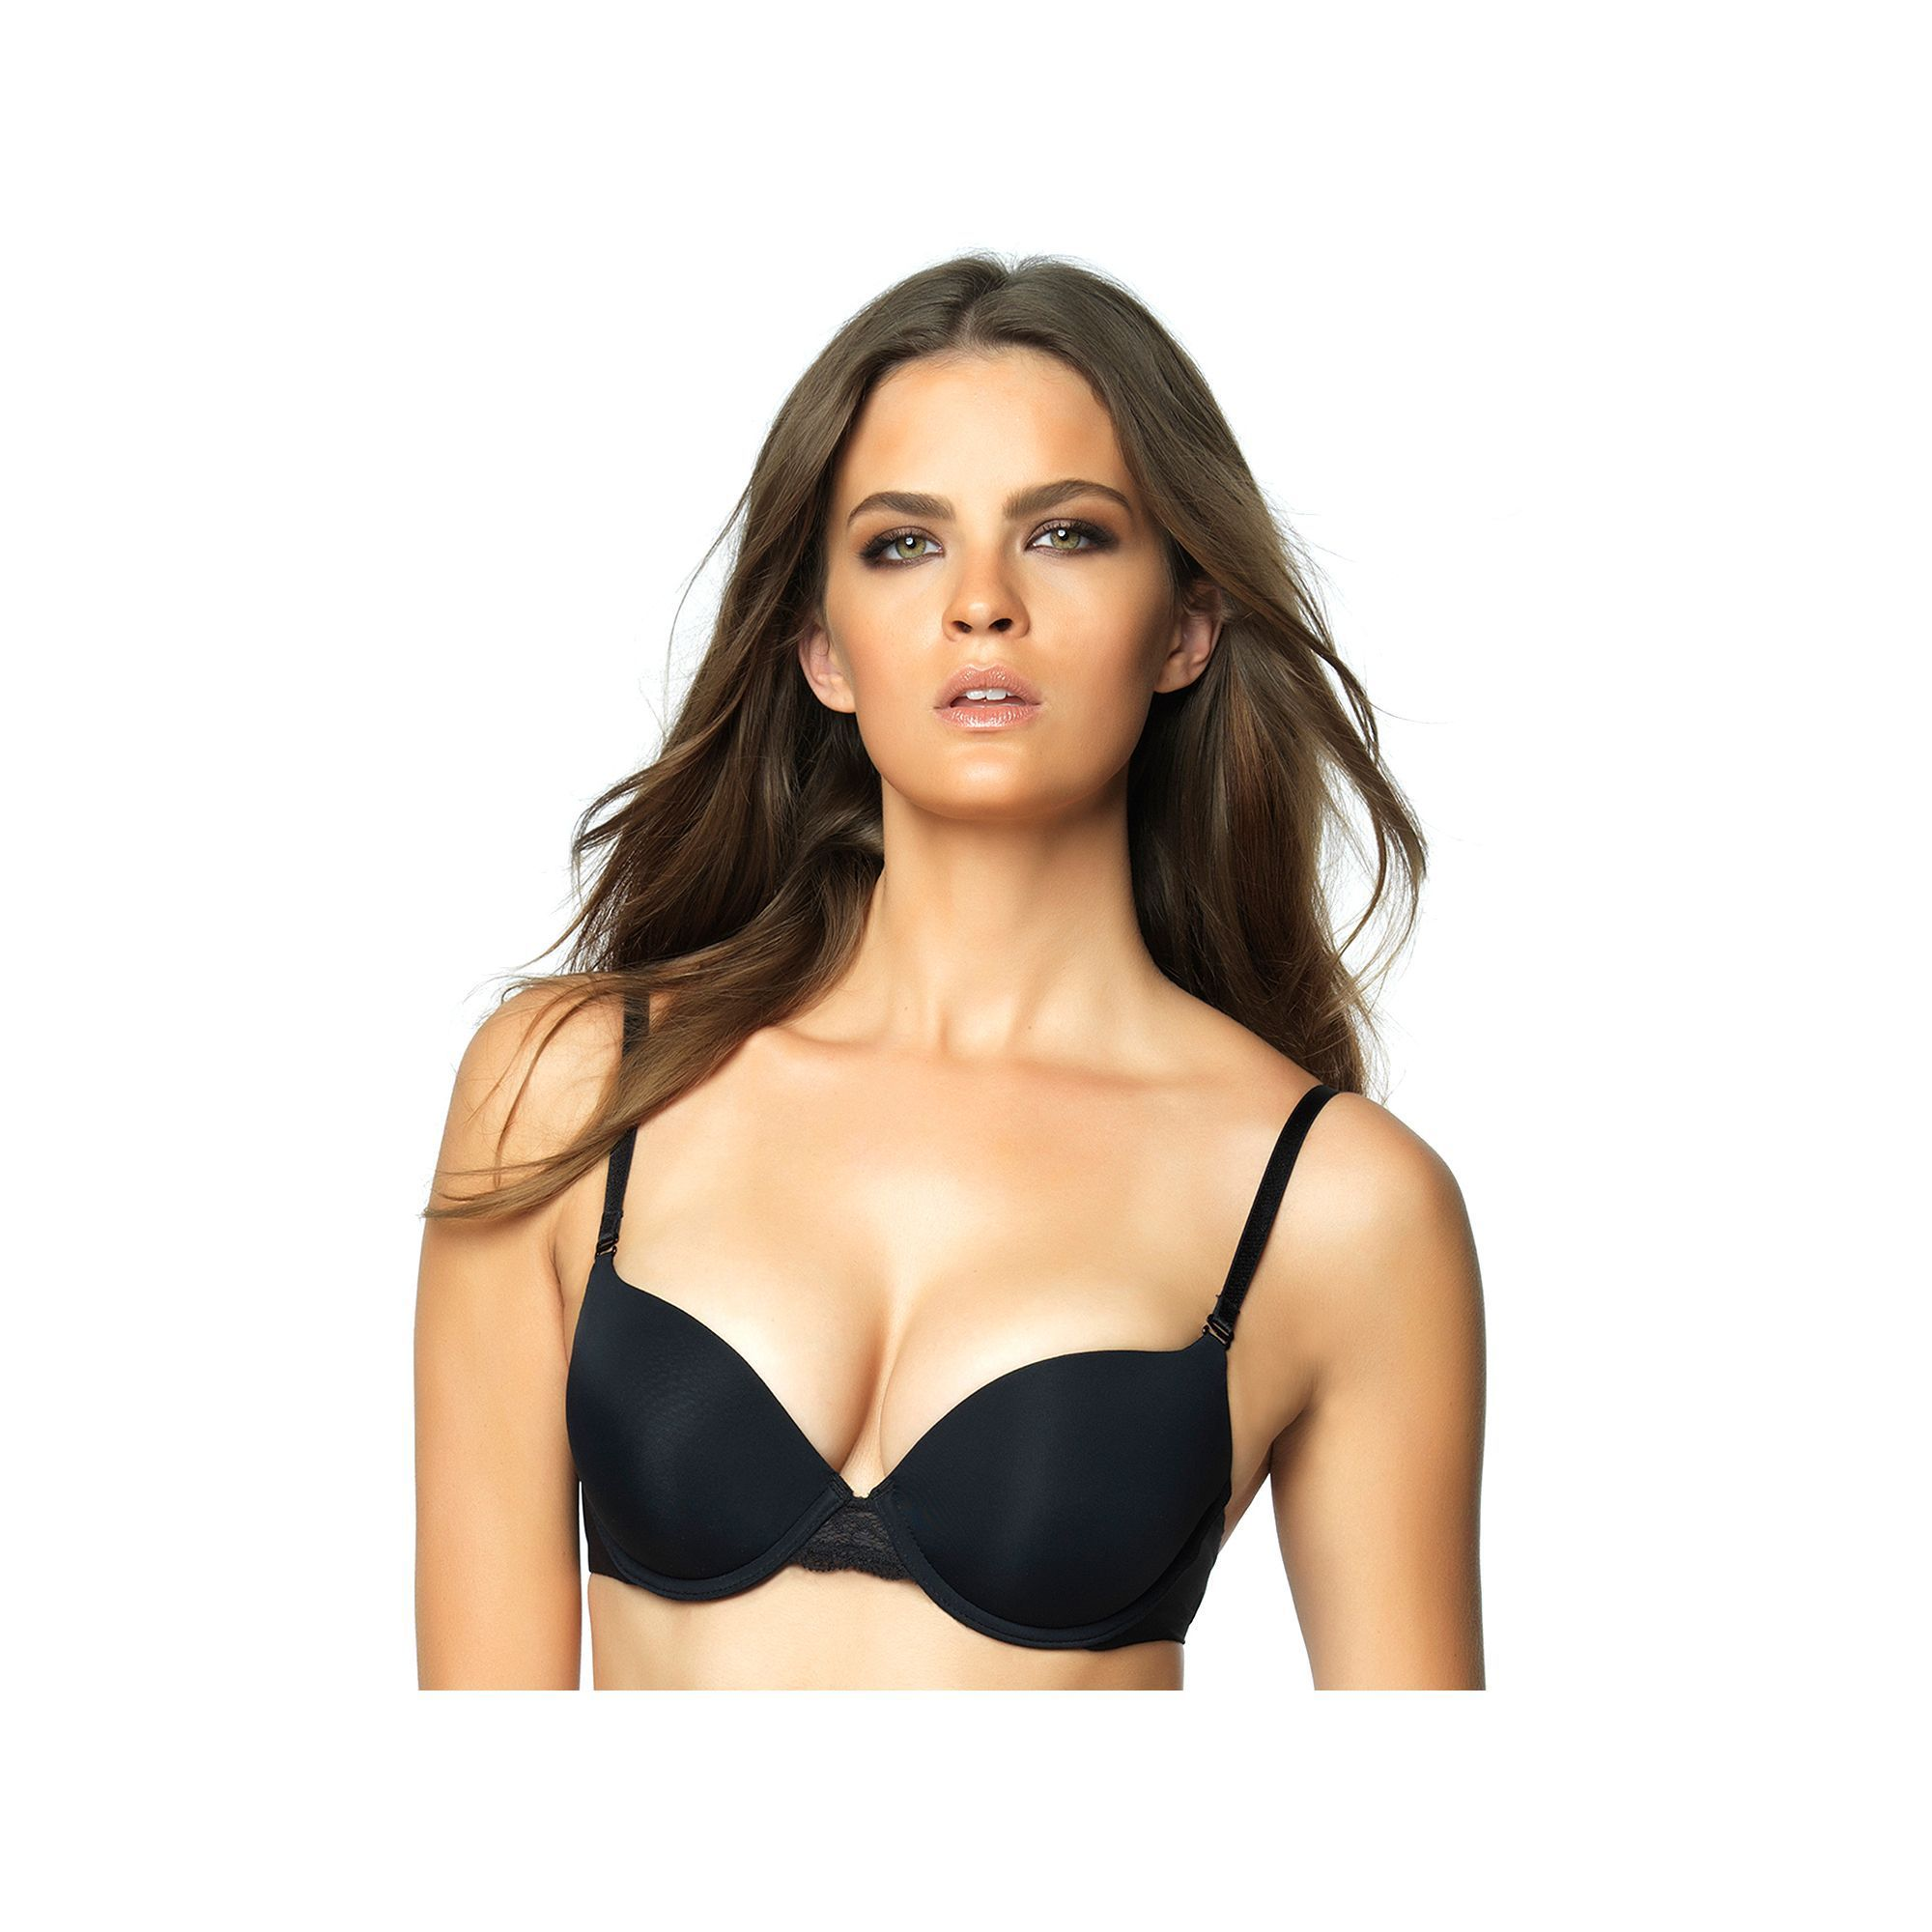 c0e2e2dc1 Jezebel Bra  Enchanted Add-A-Cup Push-Up Bra 150566